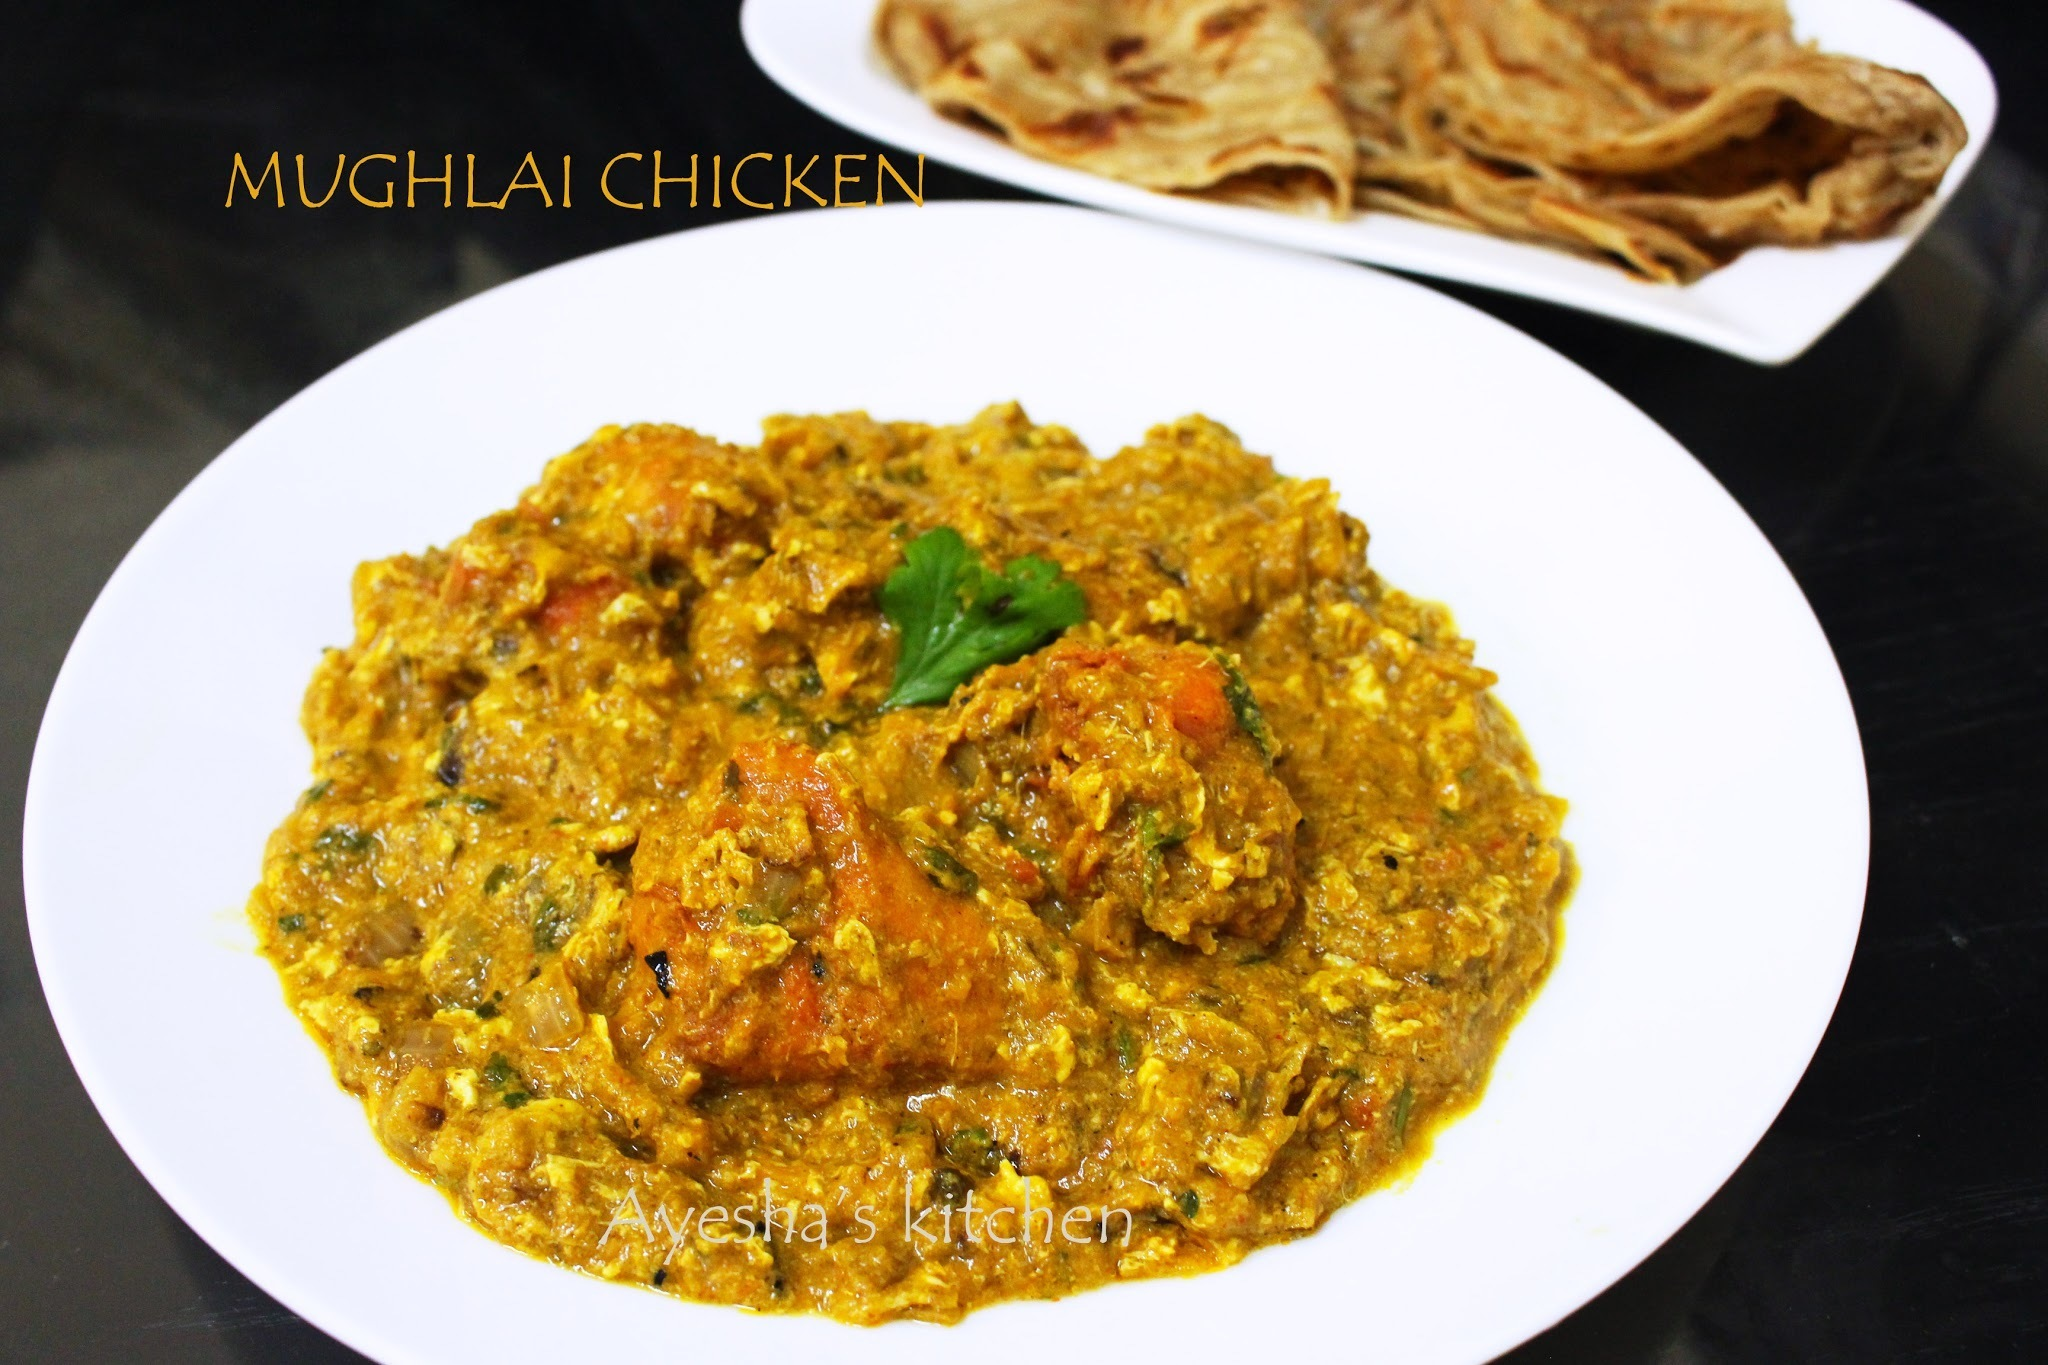 CHICKEN RECIPES - CHICKEN MUGHLAI / MUGHLAI CHICKEN